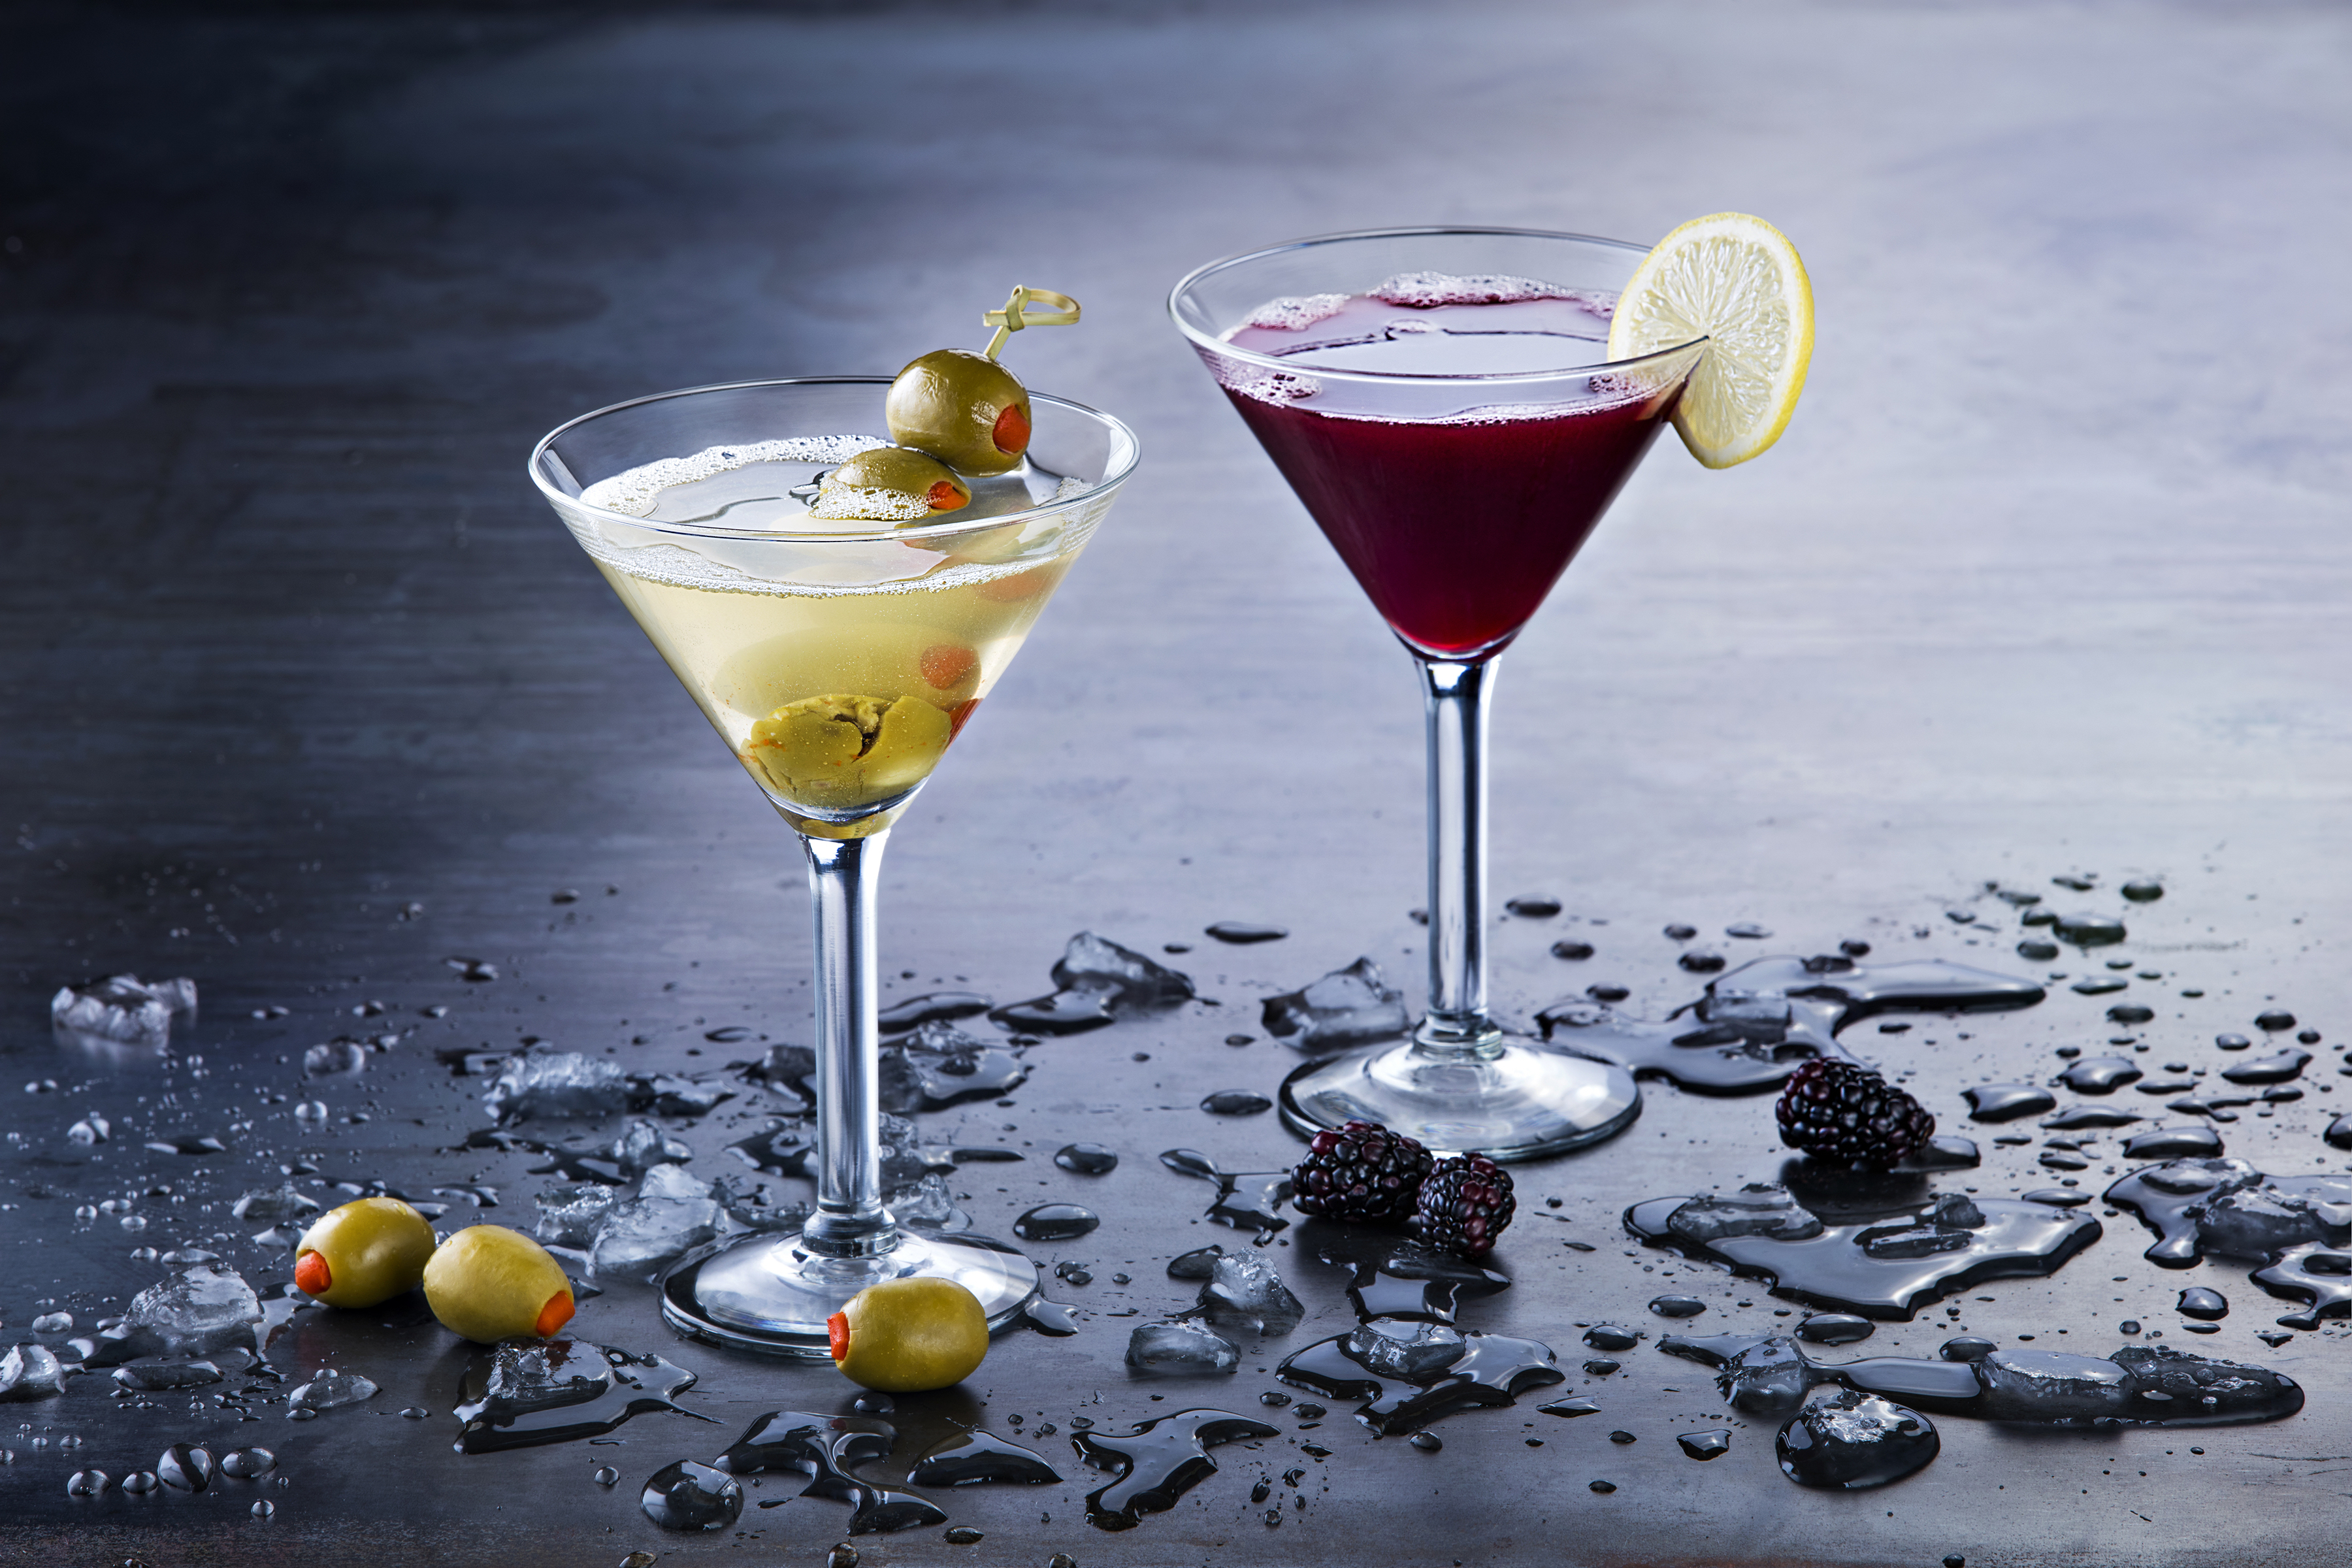 P.F. Chang's classic Dirty Olive Martini and Blackberry Spice Martini. (Photo: Business Wire)